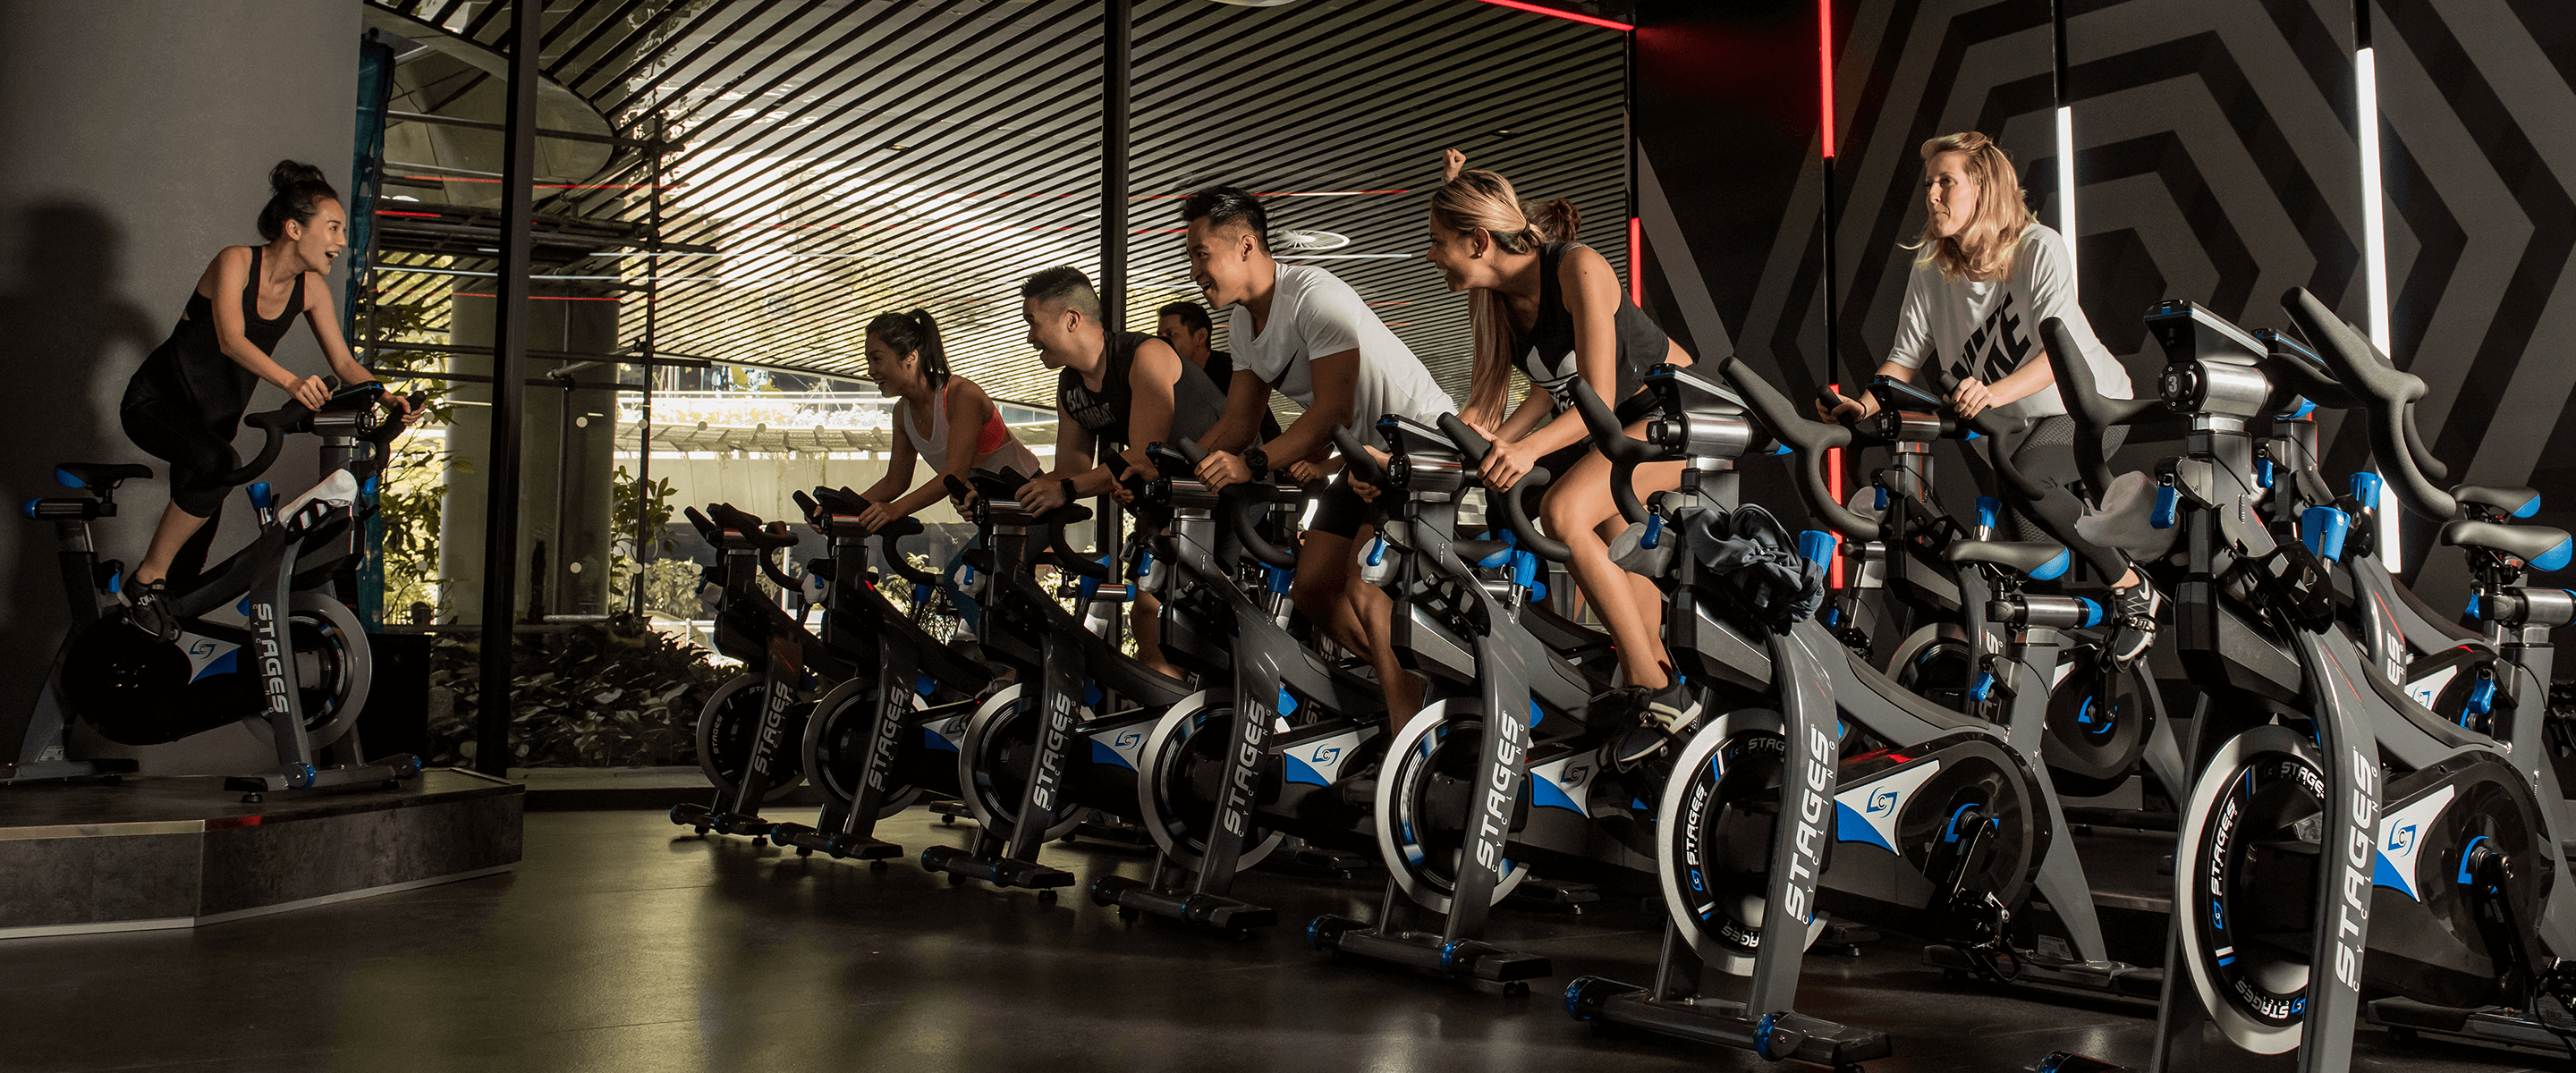 People take part in an indoor cycling class at Virgin Active South Africa